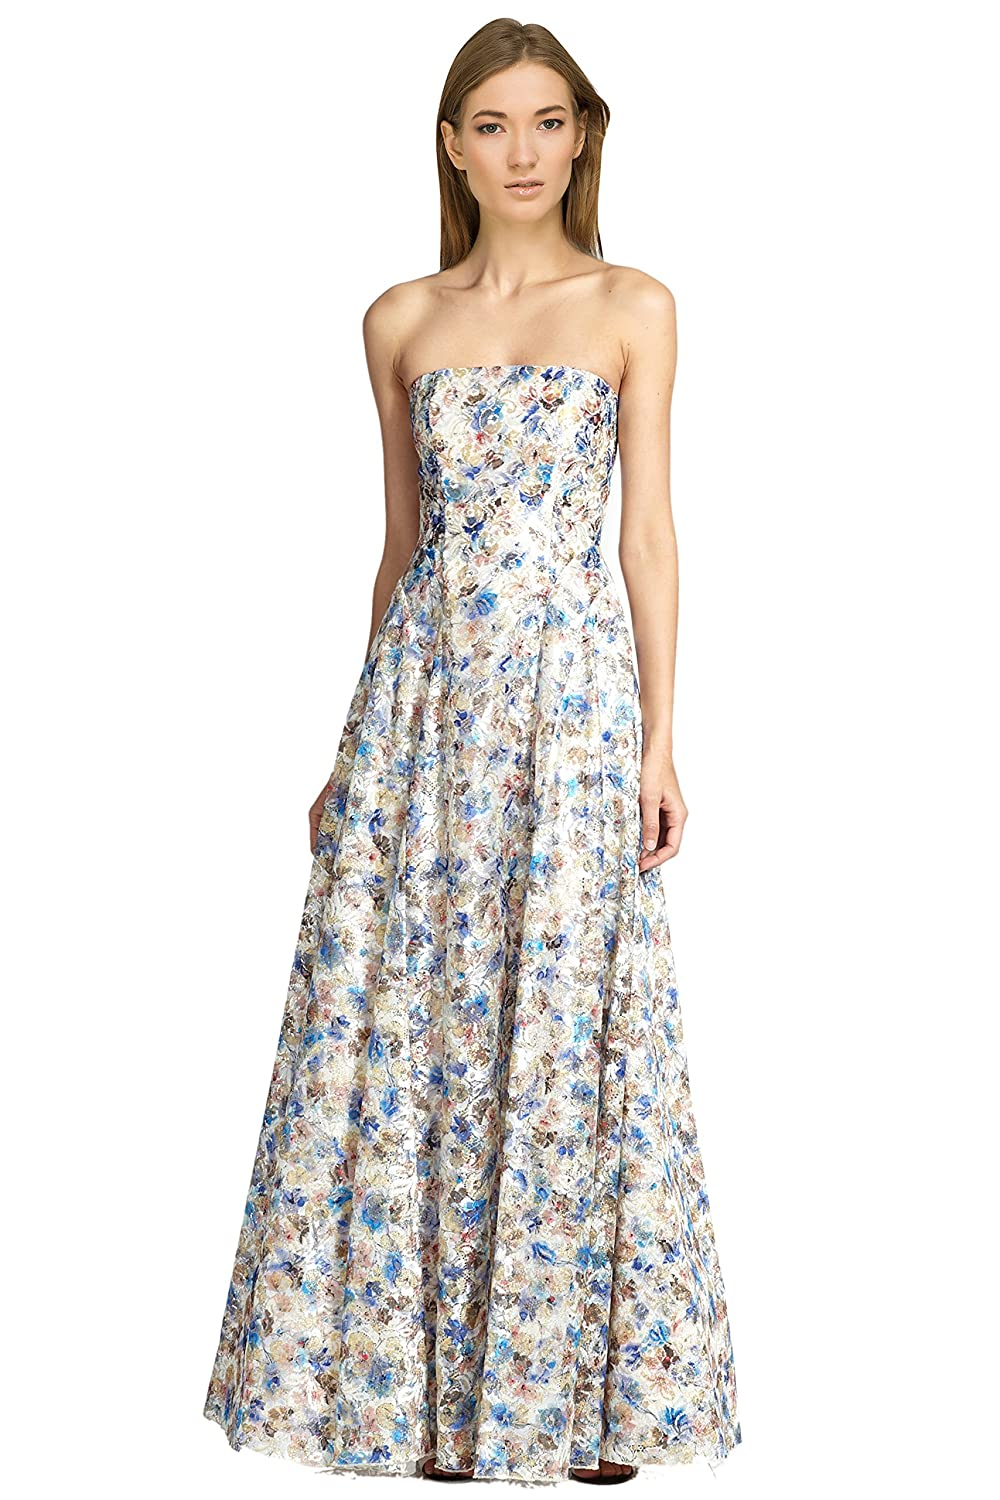 767e7480228 Top1  alice + olivia Dreema Strapless Floral Embroidered Lace Ball Gown  Dress